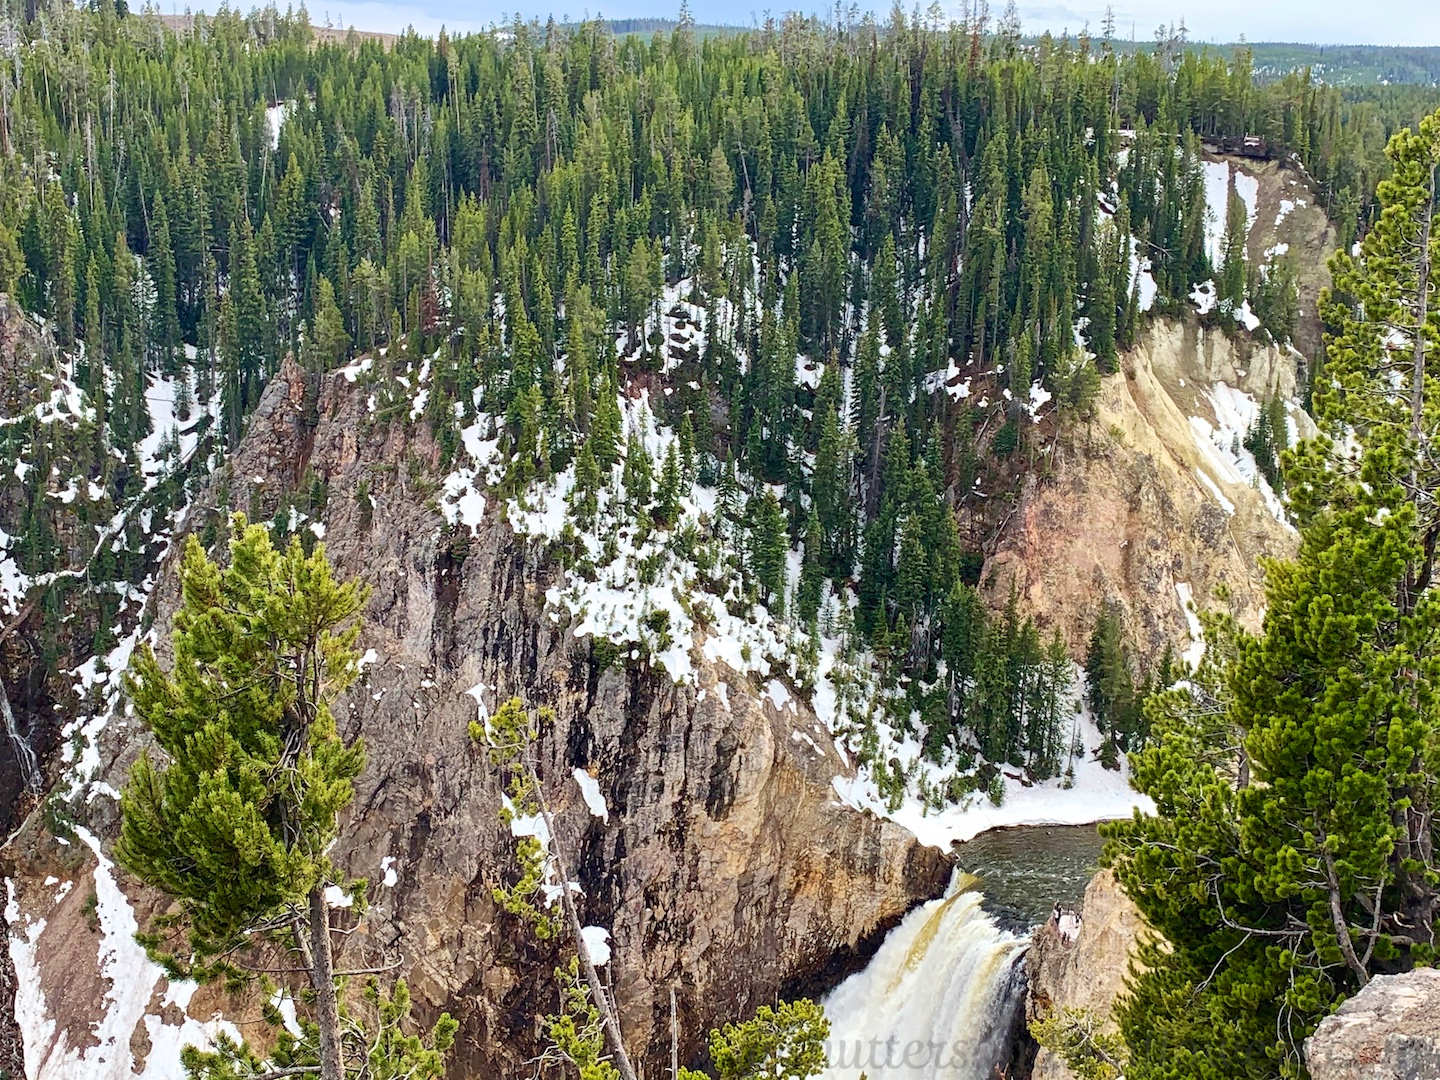 Top of falls of Grand Canyon of Yellowstone National Park, USA